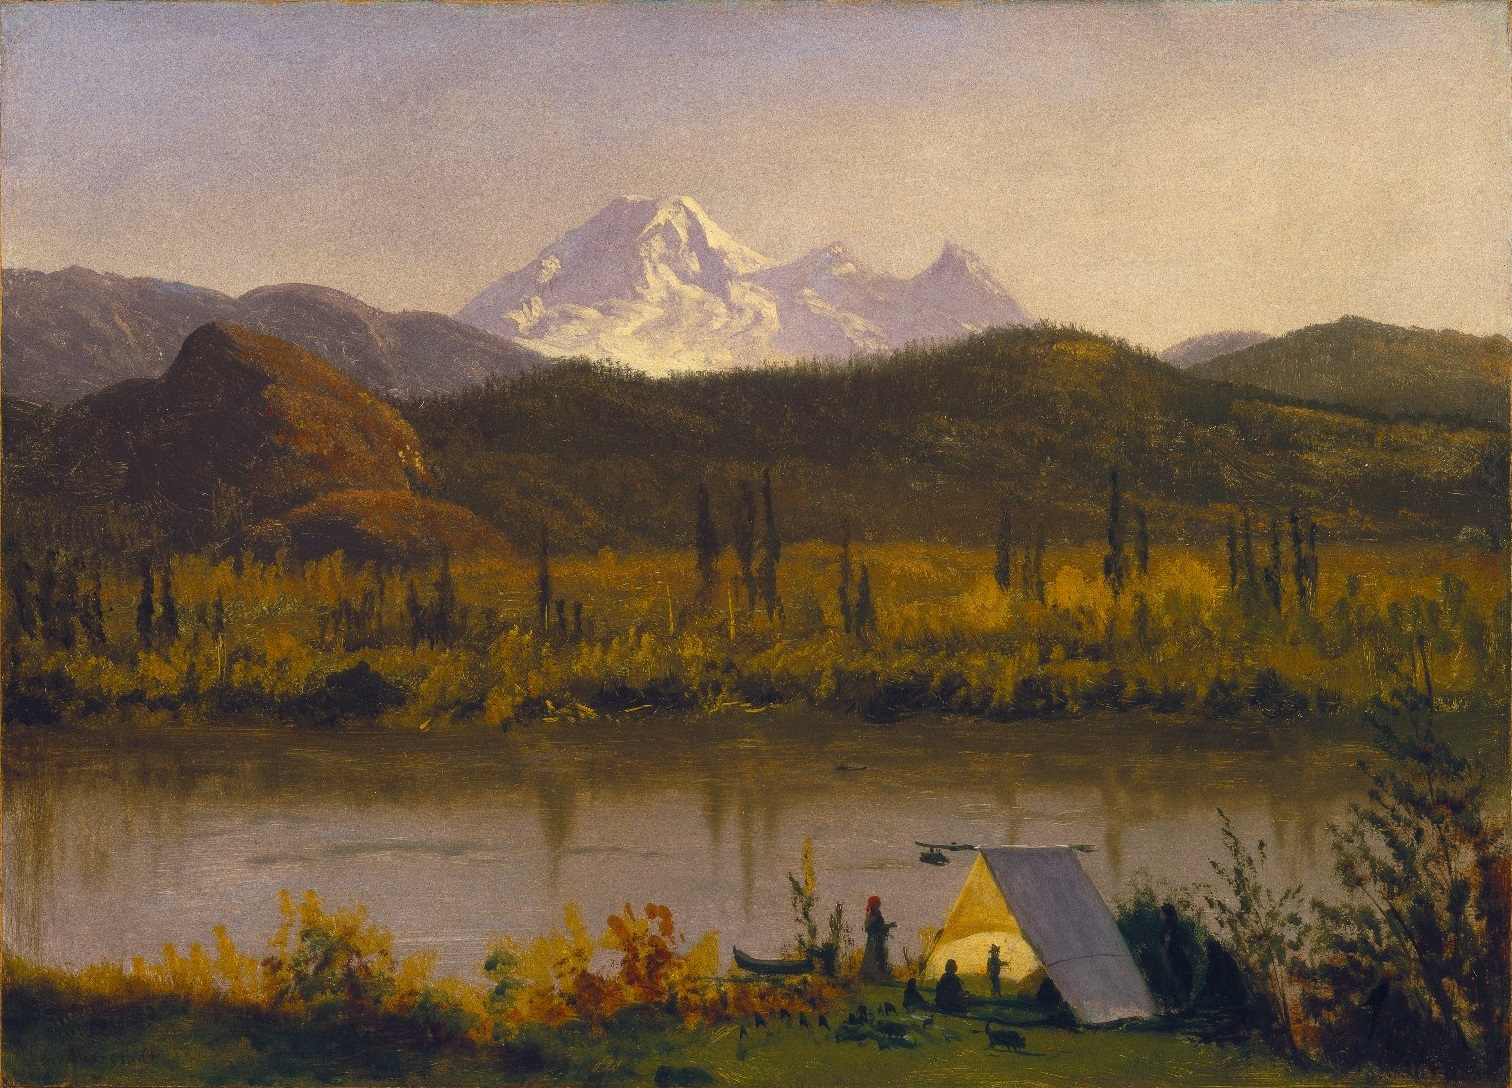 File:Brooklyn Museum - Mt. Baker, Washington, From the Frazier River - Albert Bierstadt - overall.jpg